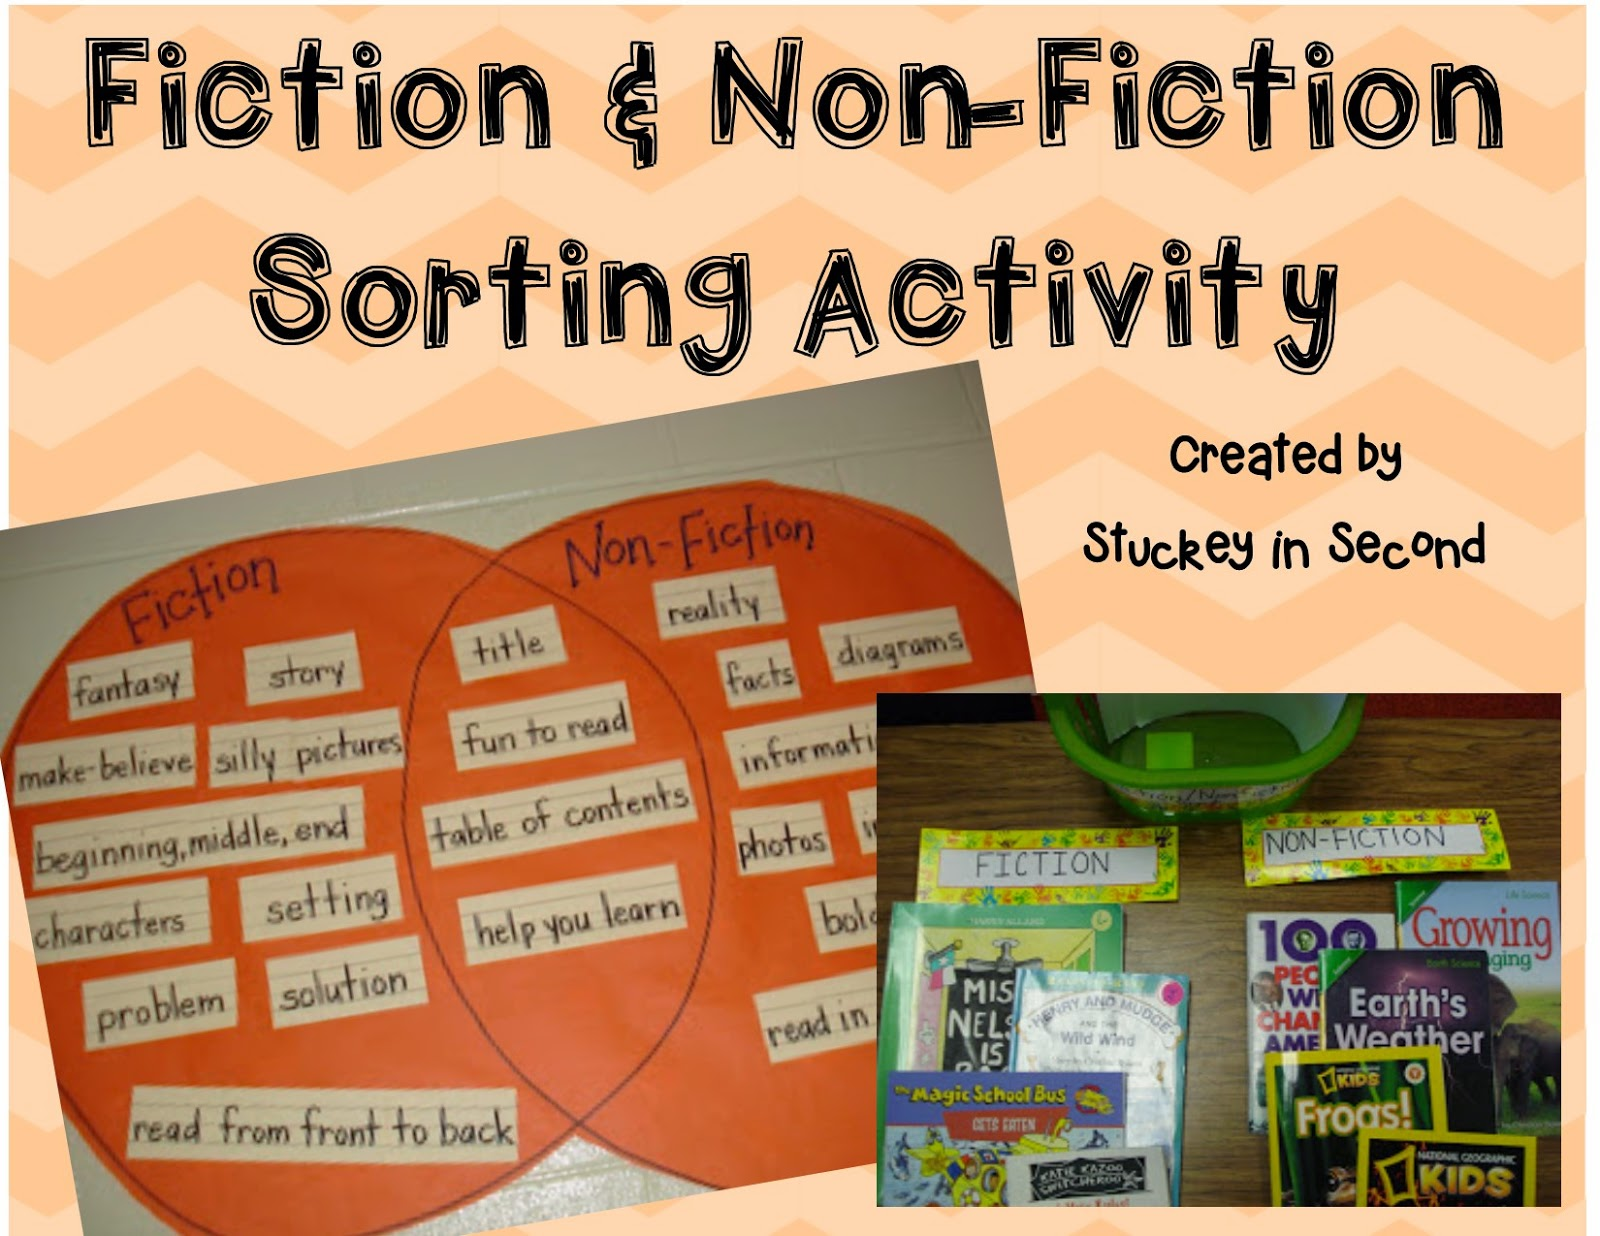 Stuckey In Second Throwback Thursday Fiction Non Fiction